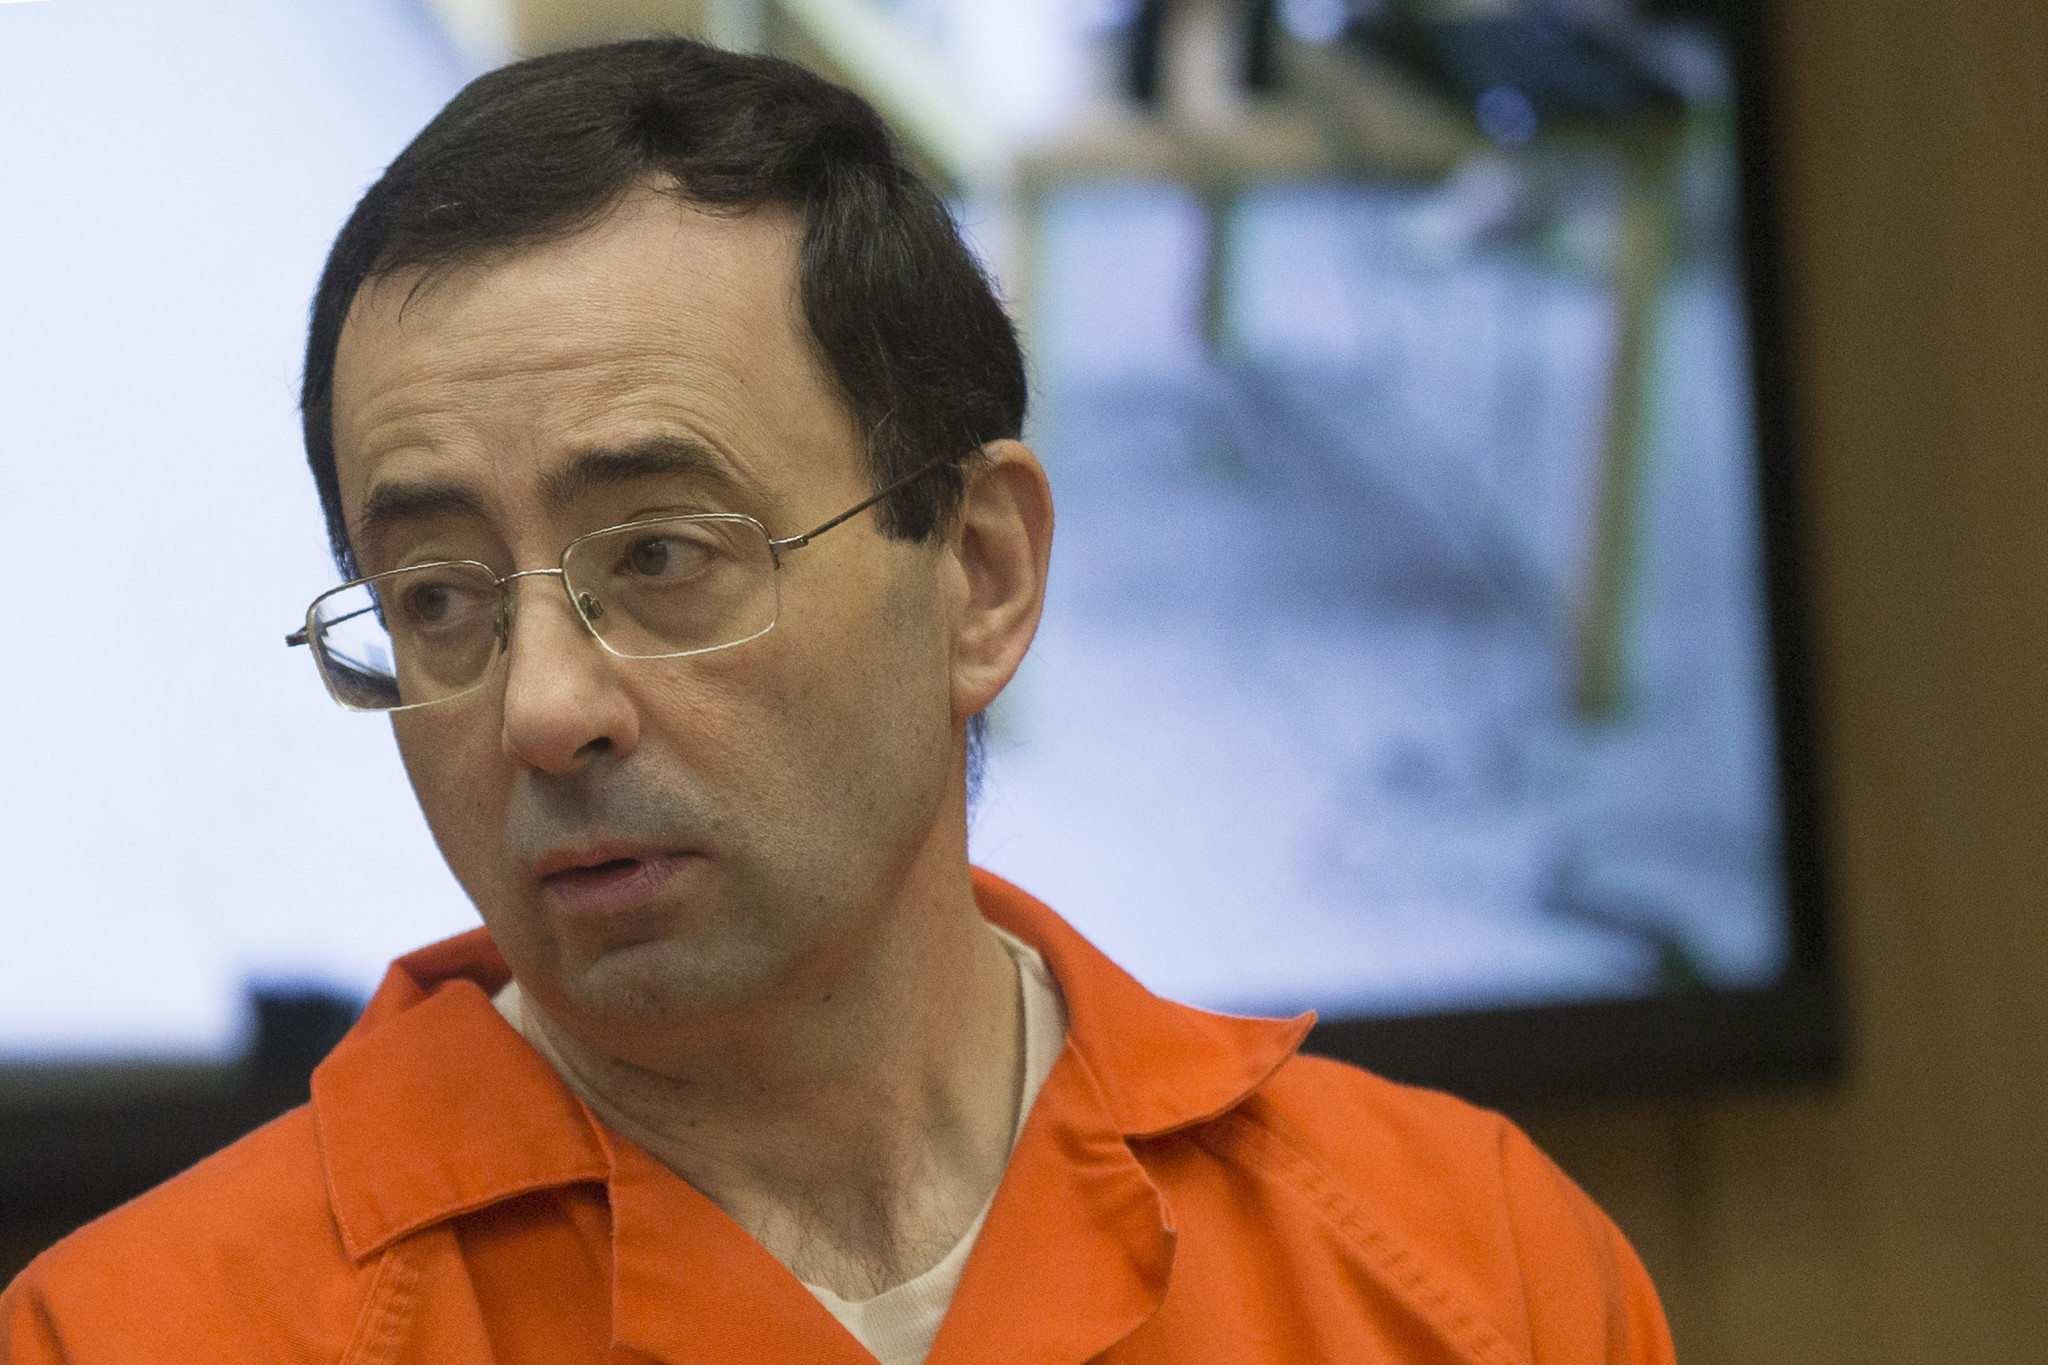 USA Gymnastics doctor Larry Nassar was sentenced to up to 300 years in prison earlier this year ©Getty Images